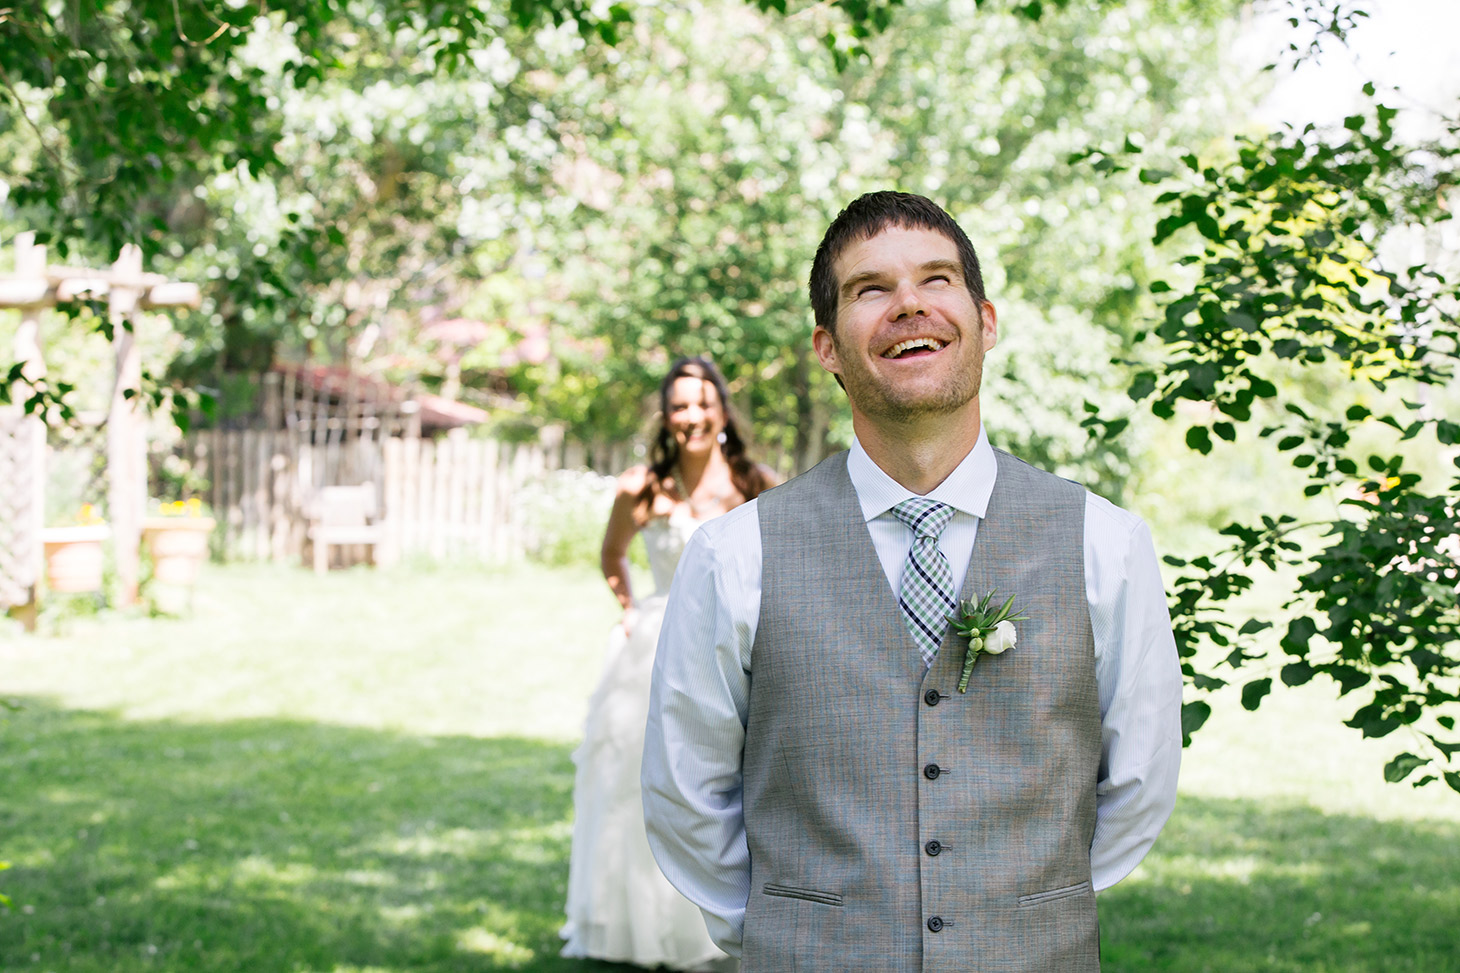 Megan-Newton-Photography-Best-Wedding-Photos-2015-130